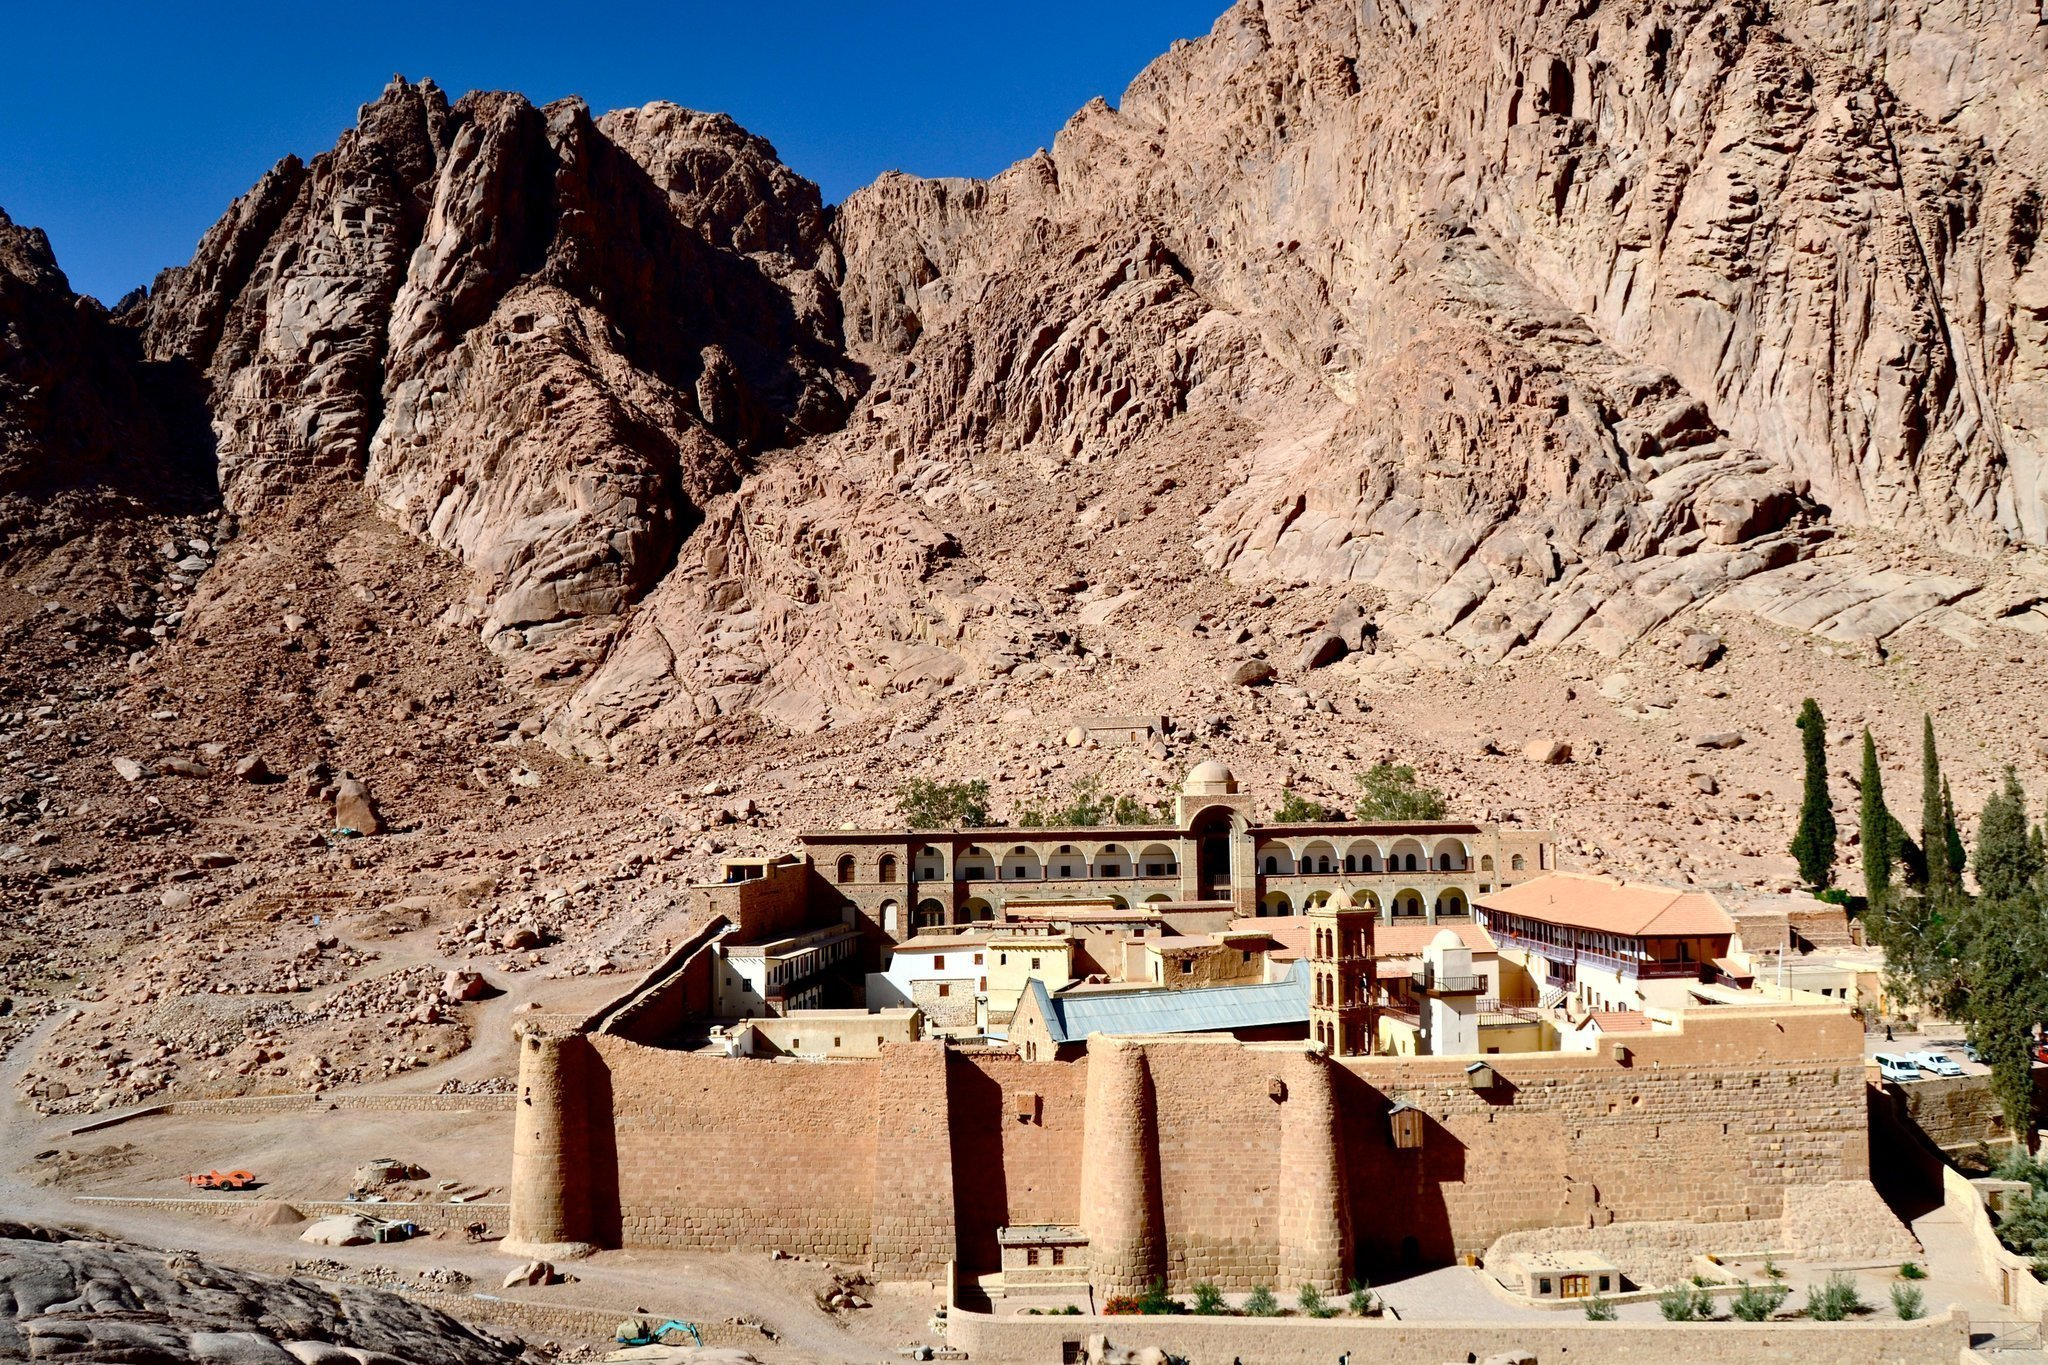 One leaf of the Syriac Galen Palimpsest remains at St. Catherine's in the Sinai Desert in Egypt, which has the world's oldest continuously operating library.MARK SCHROPE